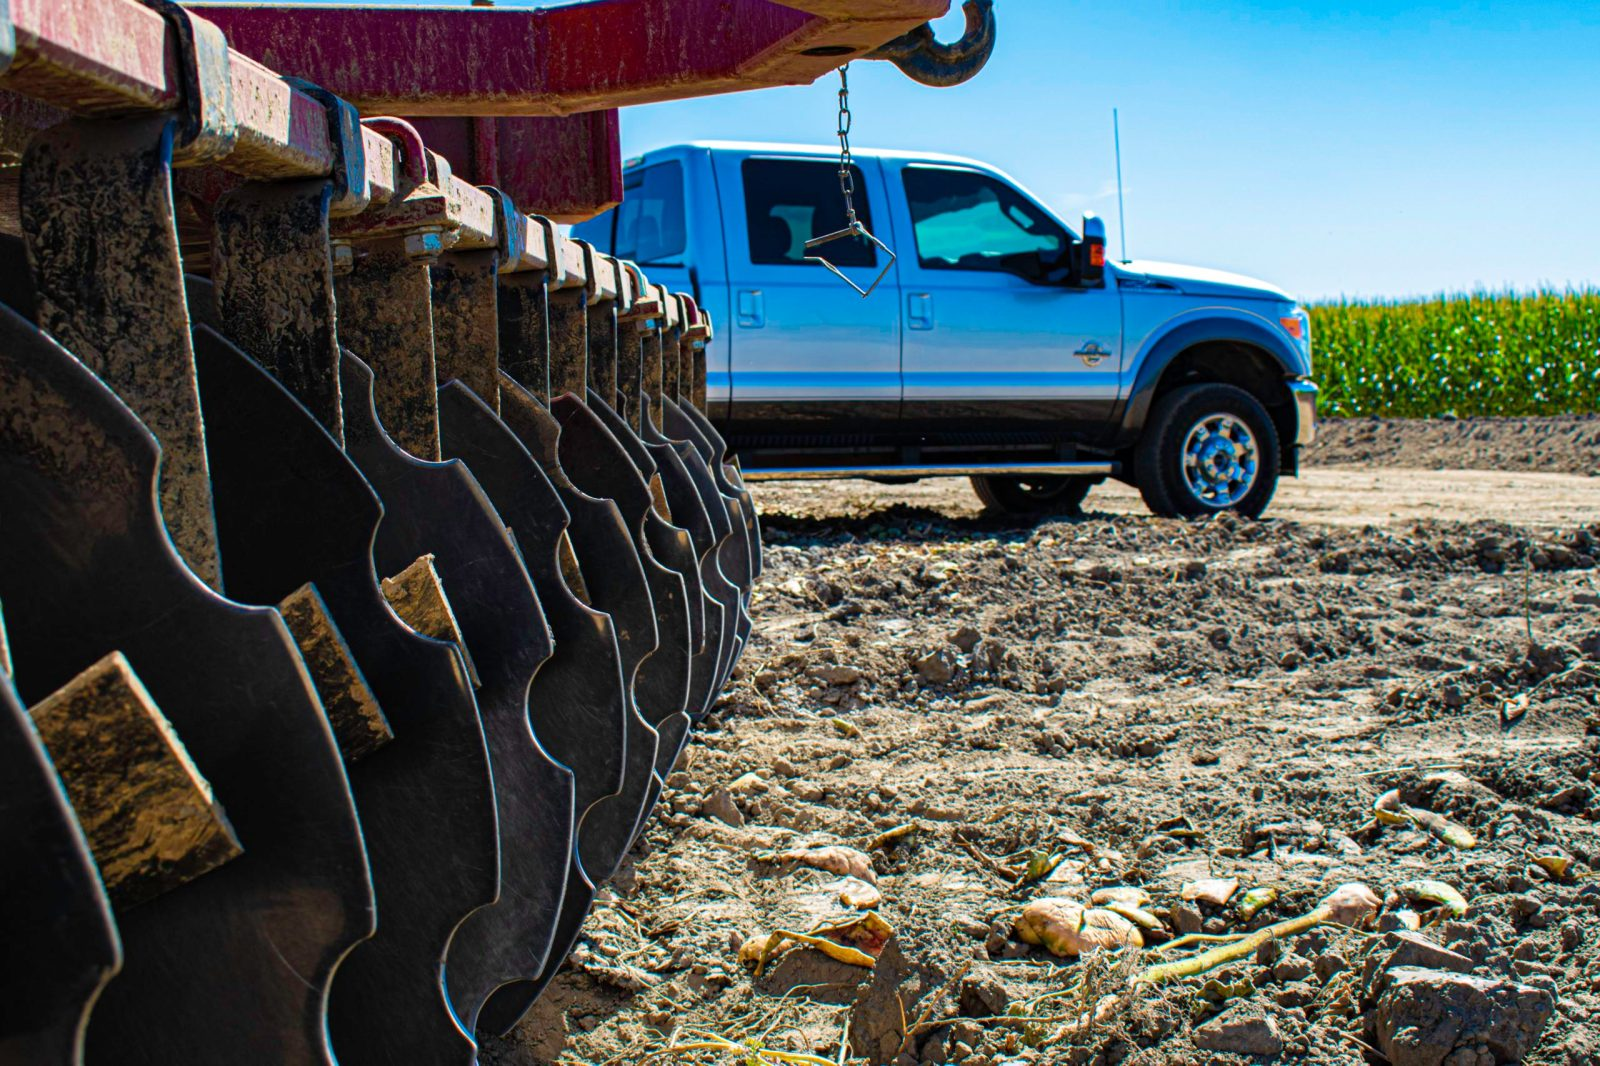 2016 Ford Super Duty F250 LARIAT Crew Cab 4x4 Diesel. West Mitsubishi Stock Number 18256.